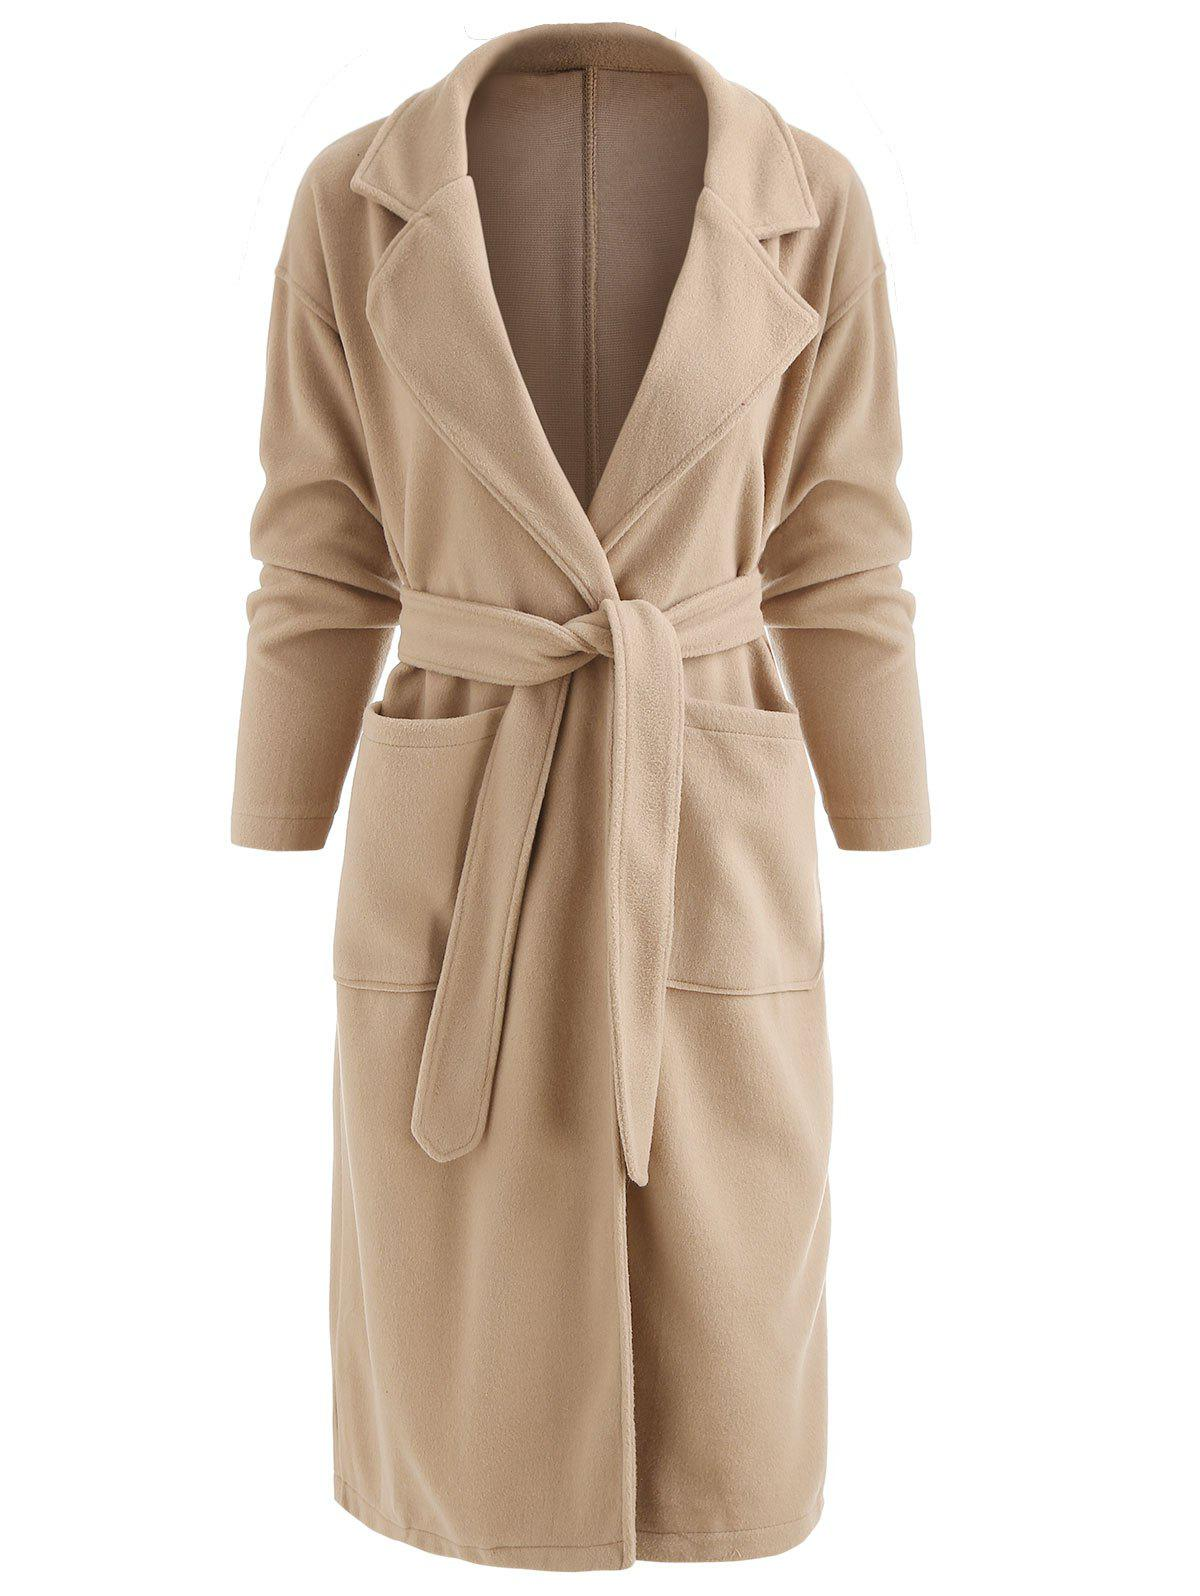 Fancy Lapel Neck Belted Long Coat with Pockets